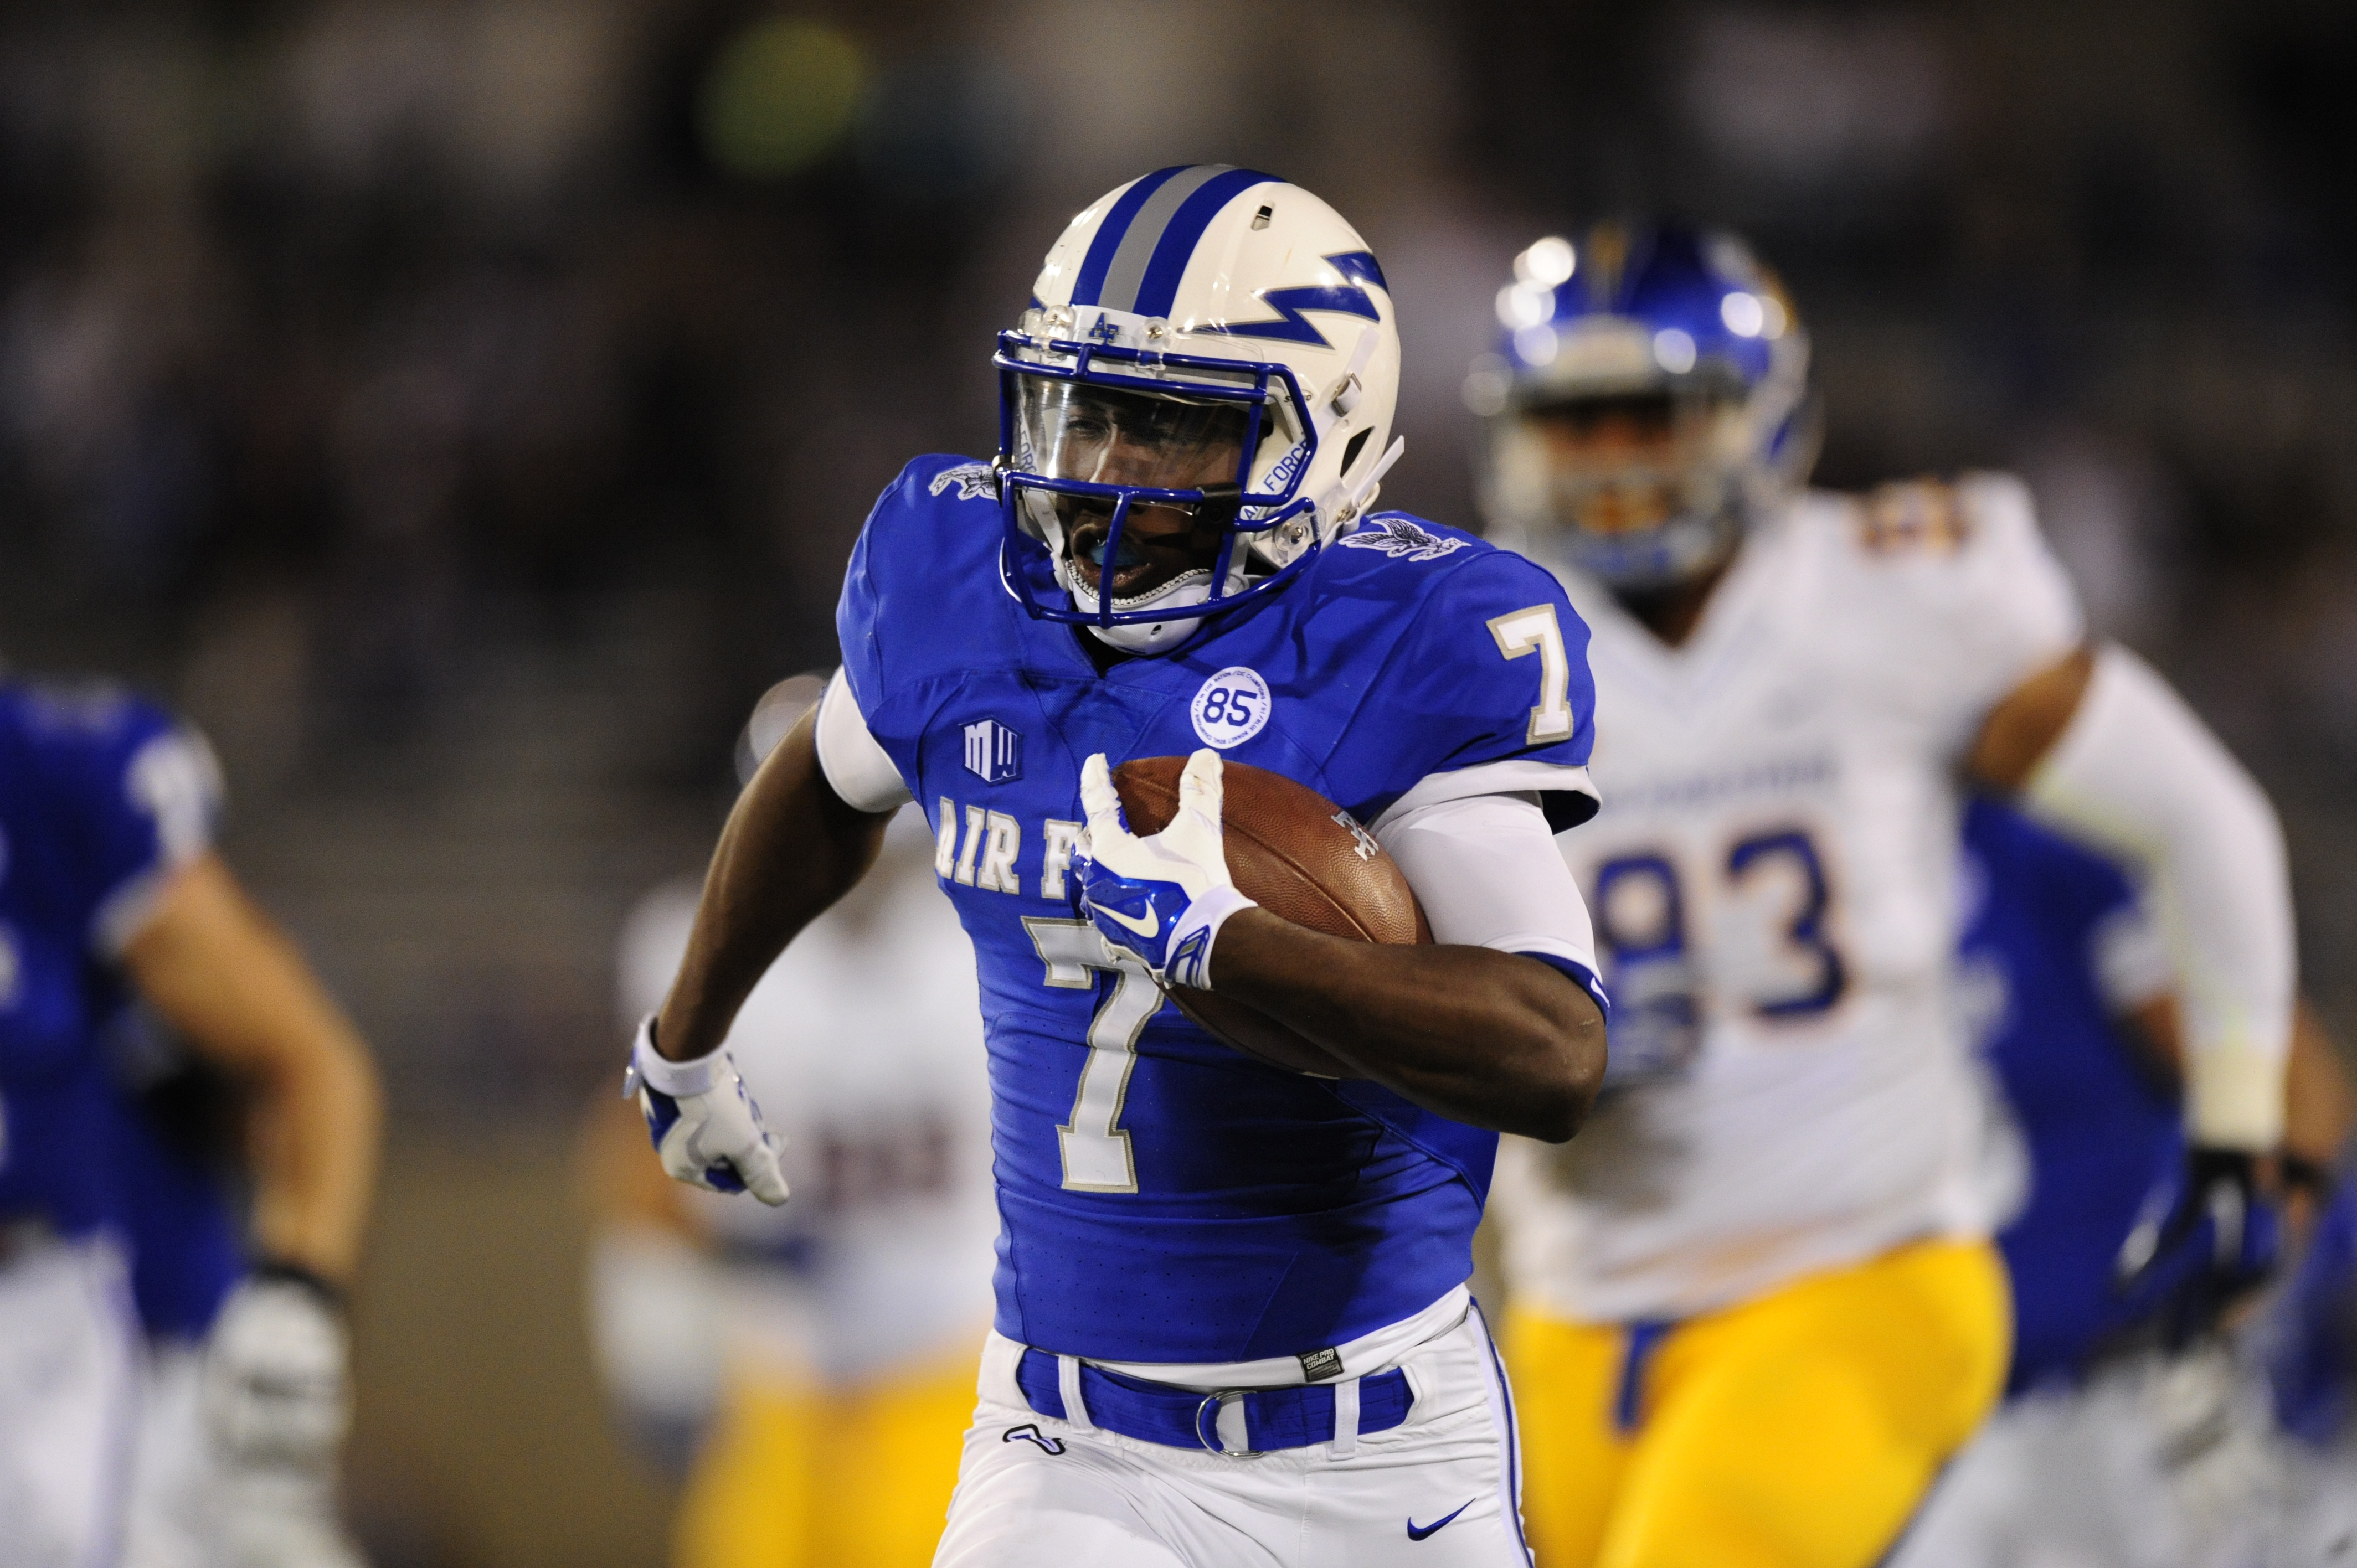 Air Force wide receiver Garrett Brown (7) runs for a touchdown early in the first quarter against San Jose State during an NCAA college football game Saturday, Sept. 12, 2015, at Air Force Academy, Colo. (Daniel Owen/The Gazette via AP)